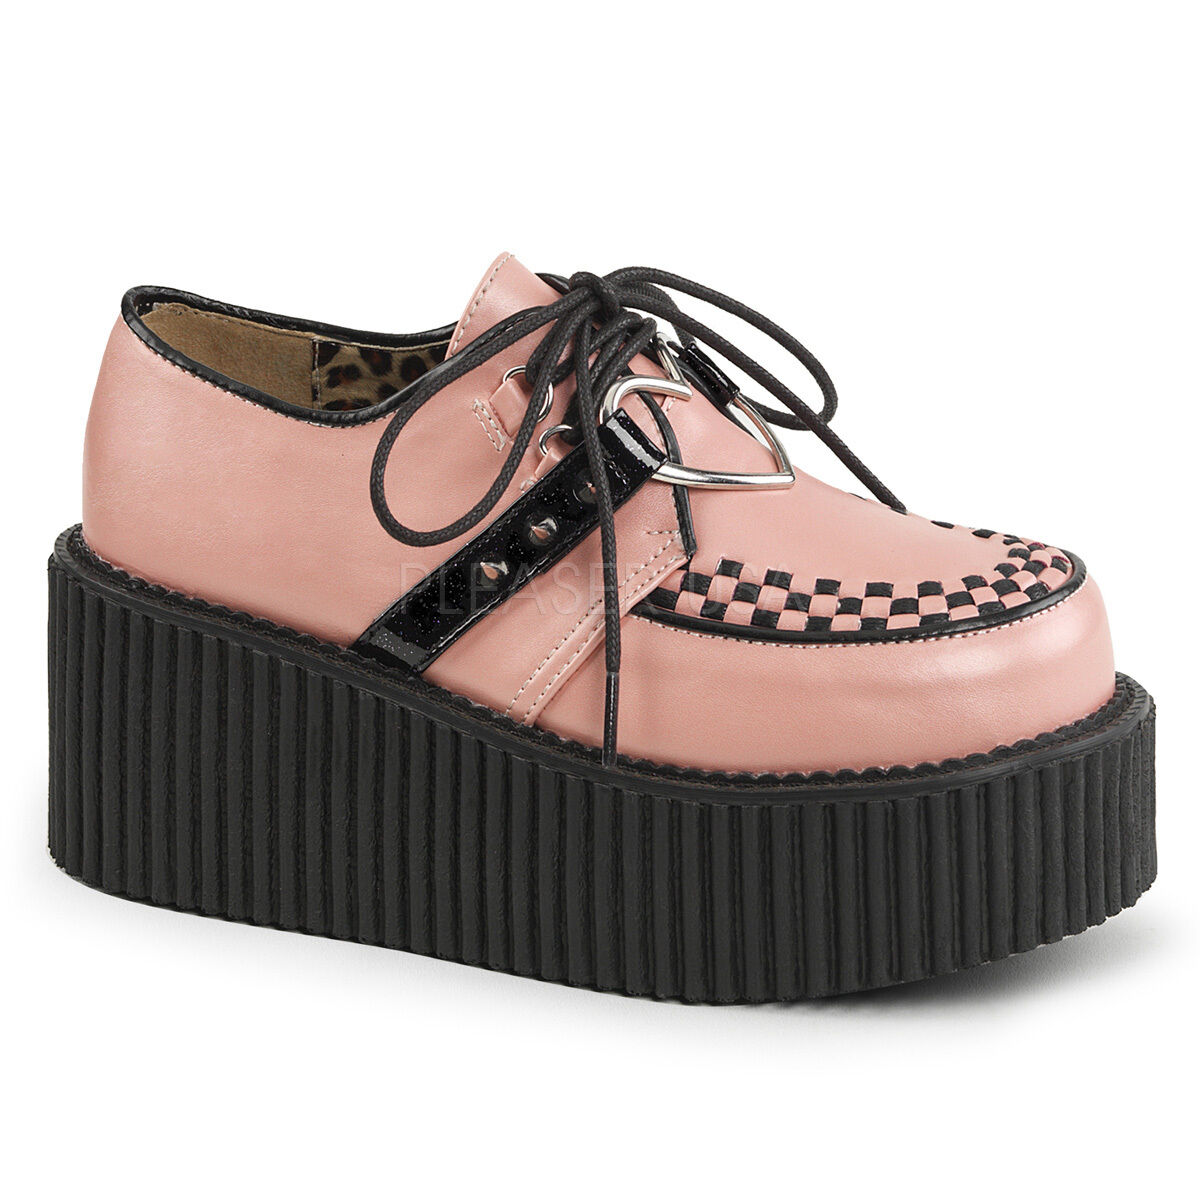 DEMONIA CRE206/BPVL Baby Pink Gothic Heart O-Ring Platform Damens Creepers Schuhes